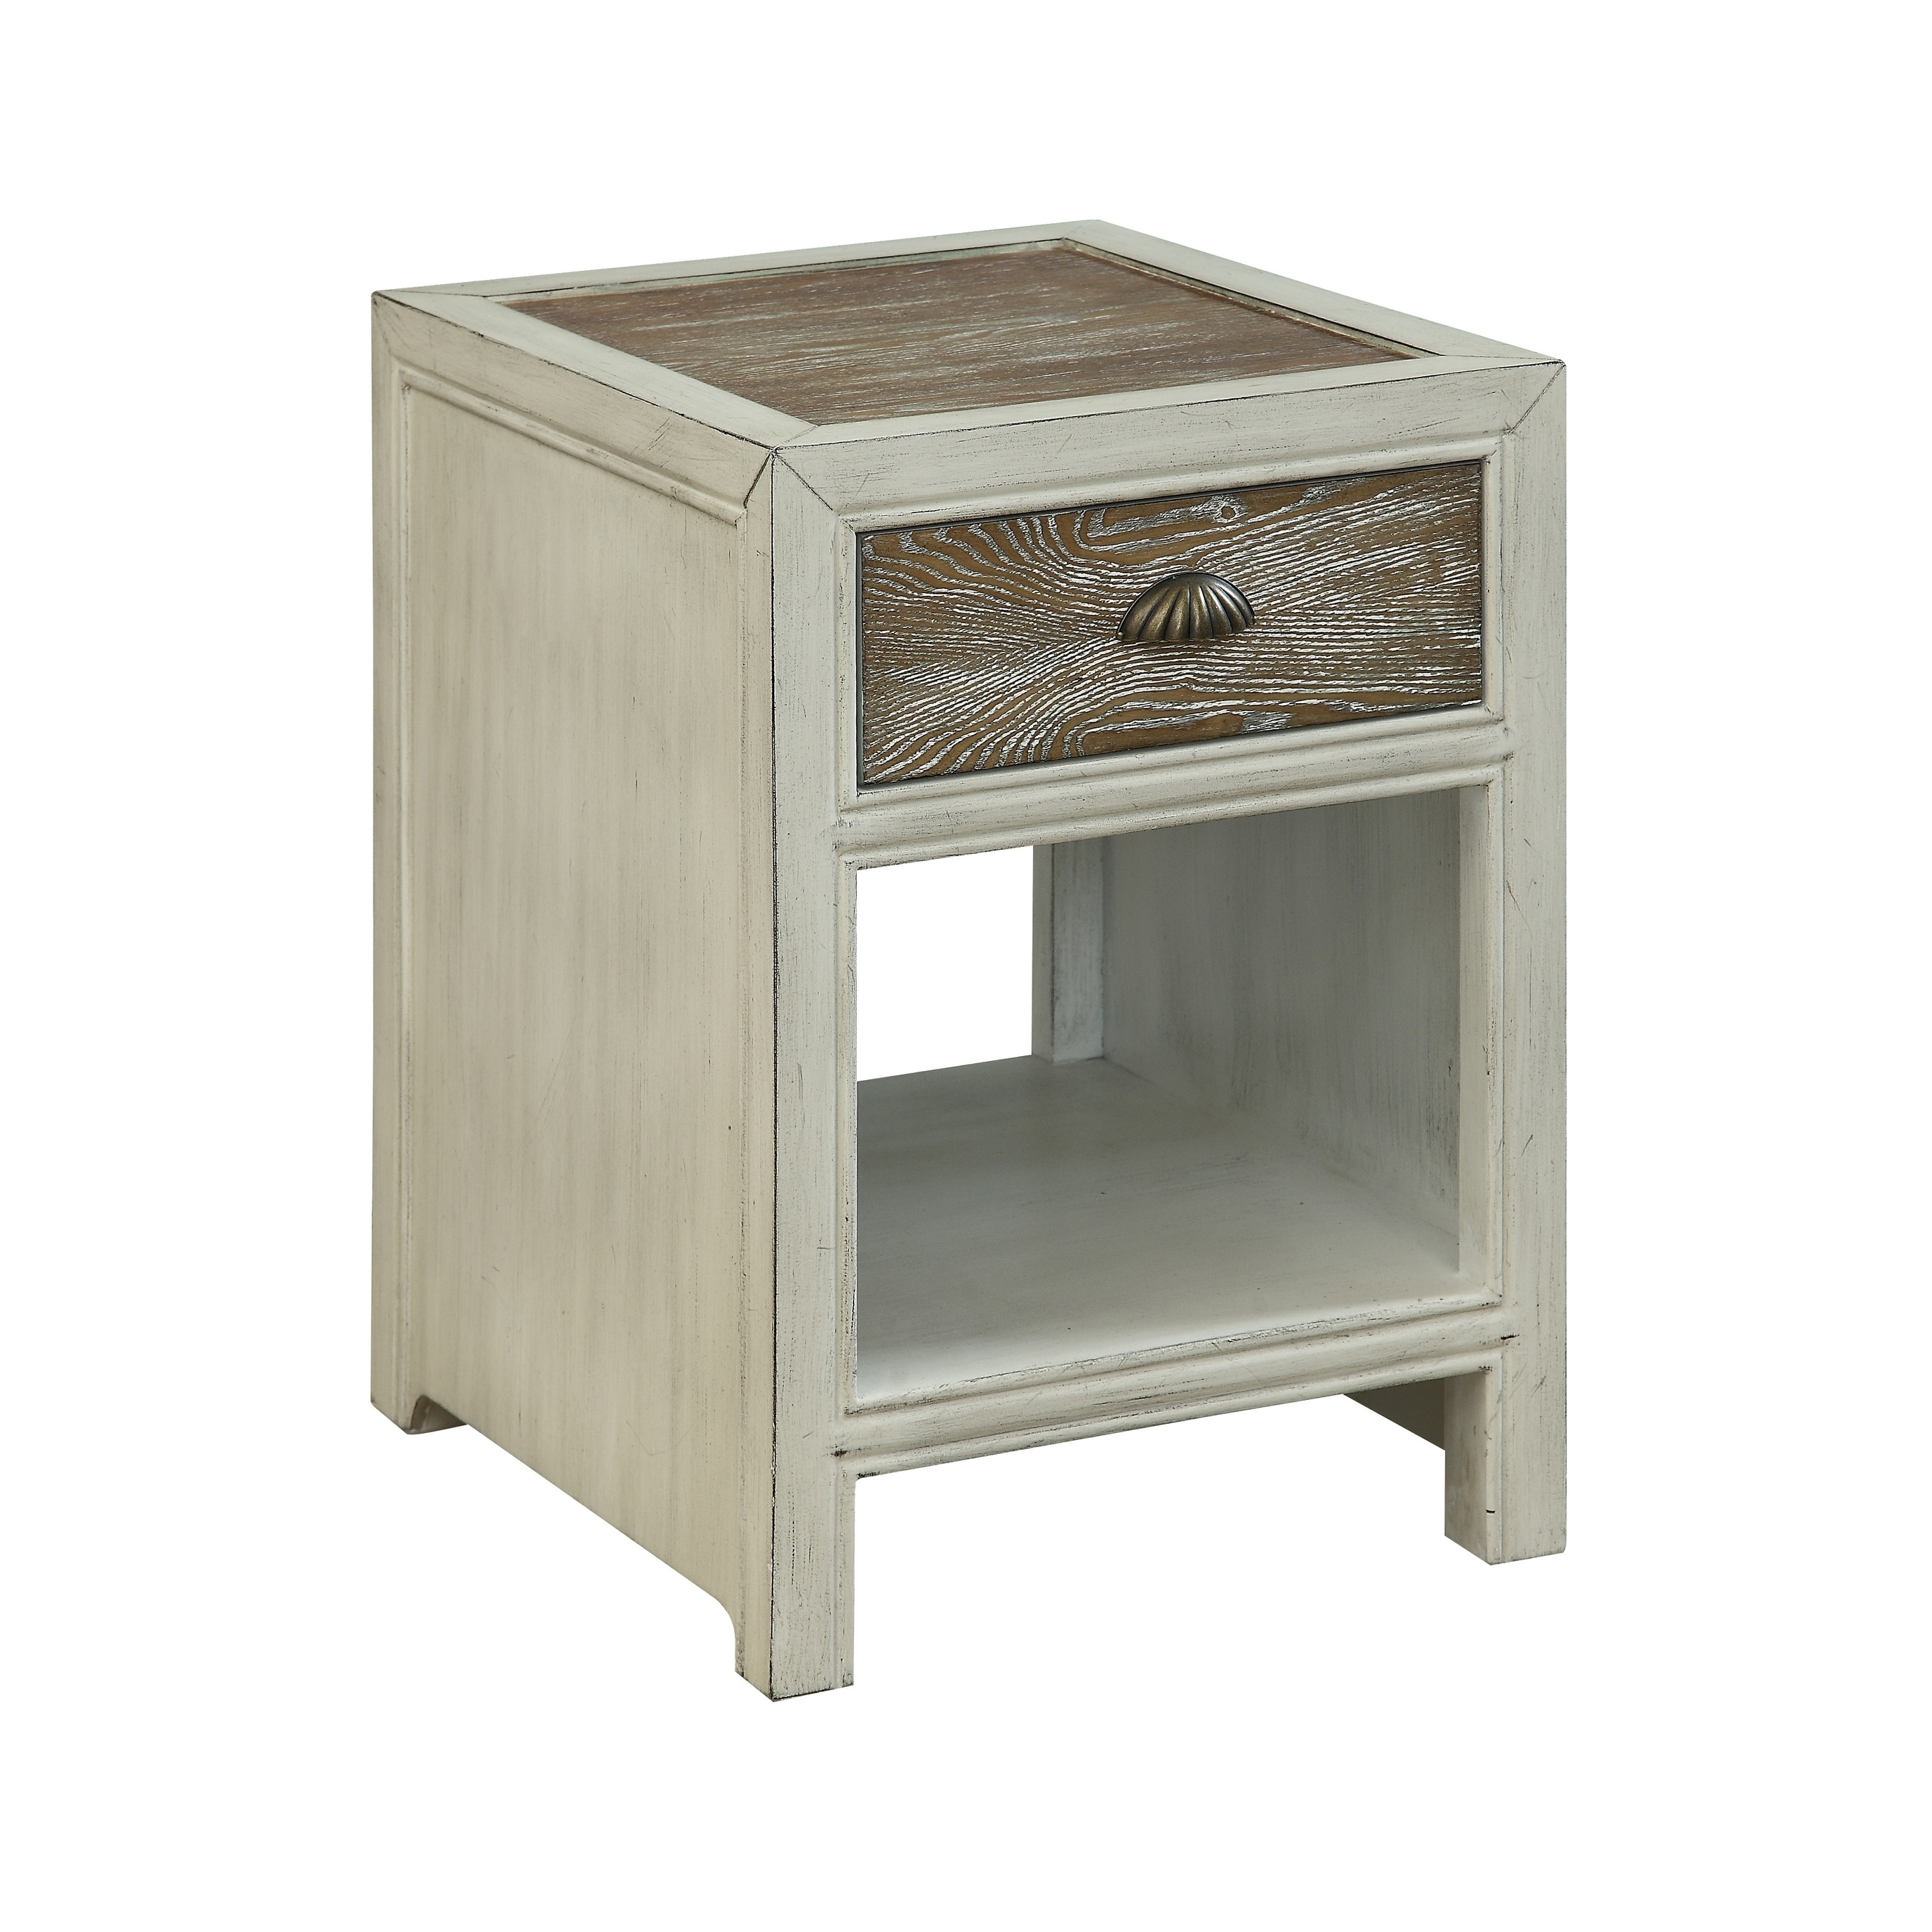 Treasure Trove Wheeland Aged White and Brown 1-drawer Chairside Table